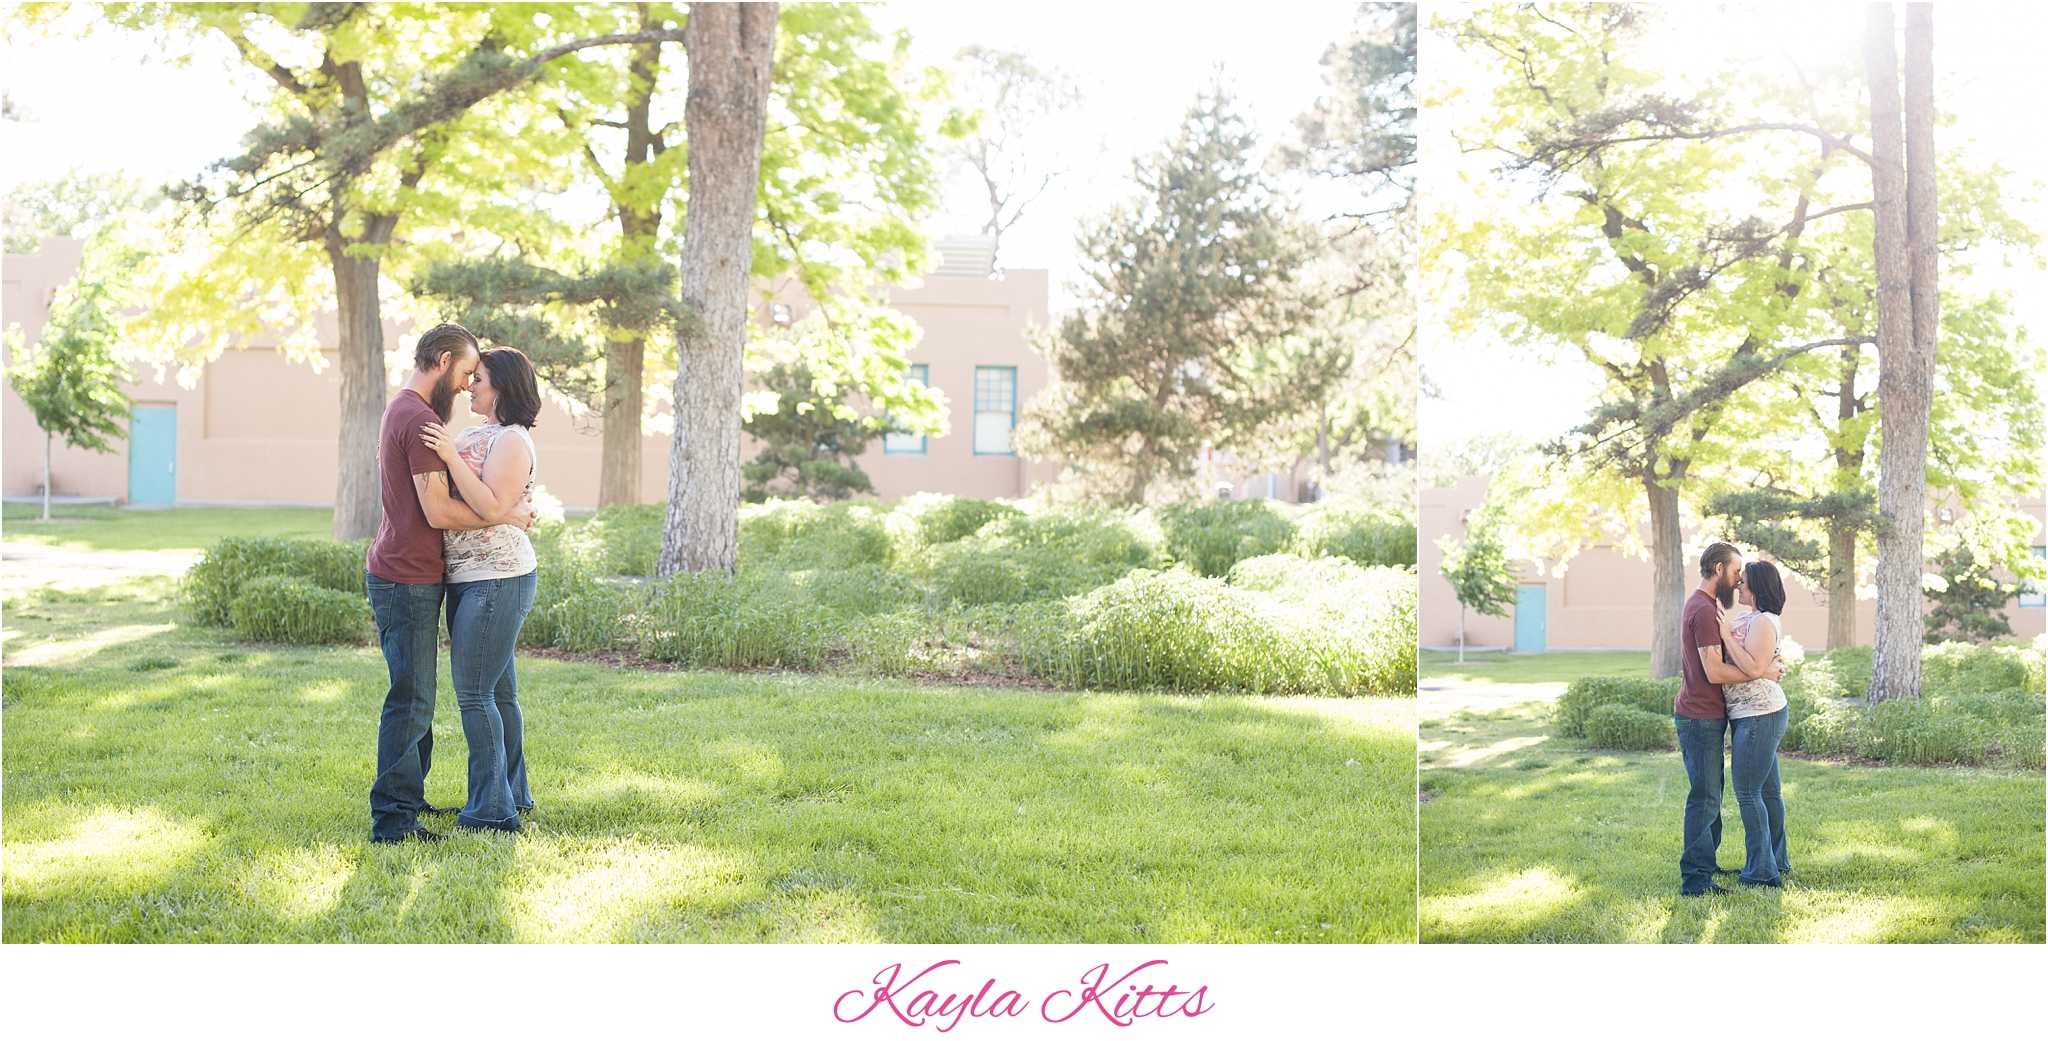 kayla kitts photography - albuquerque wedding photographer - albuquerque engagement photographer - nm wedding - albuquerque wedding - nm wedding - unm engagement - bosque engagement session_0008.jpg